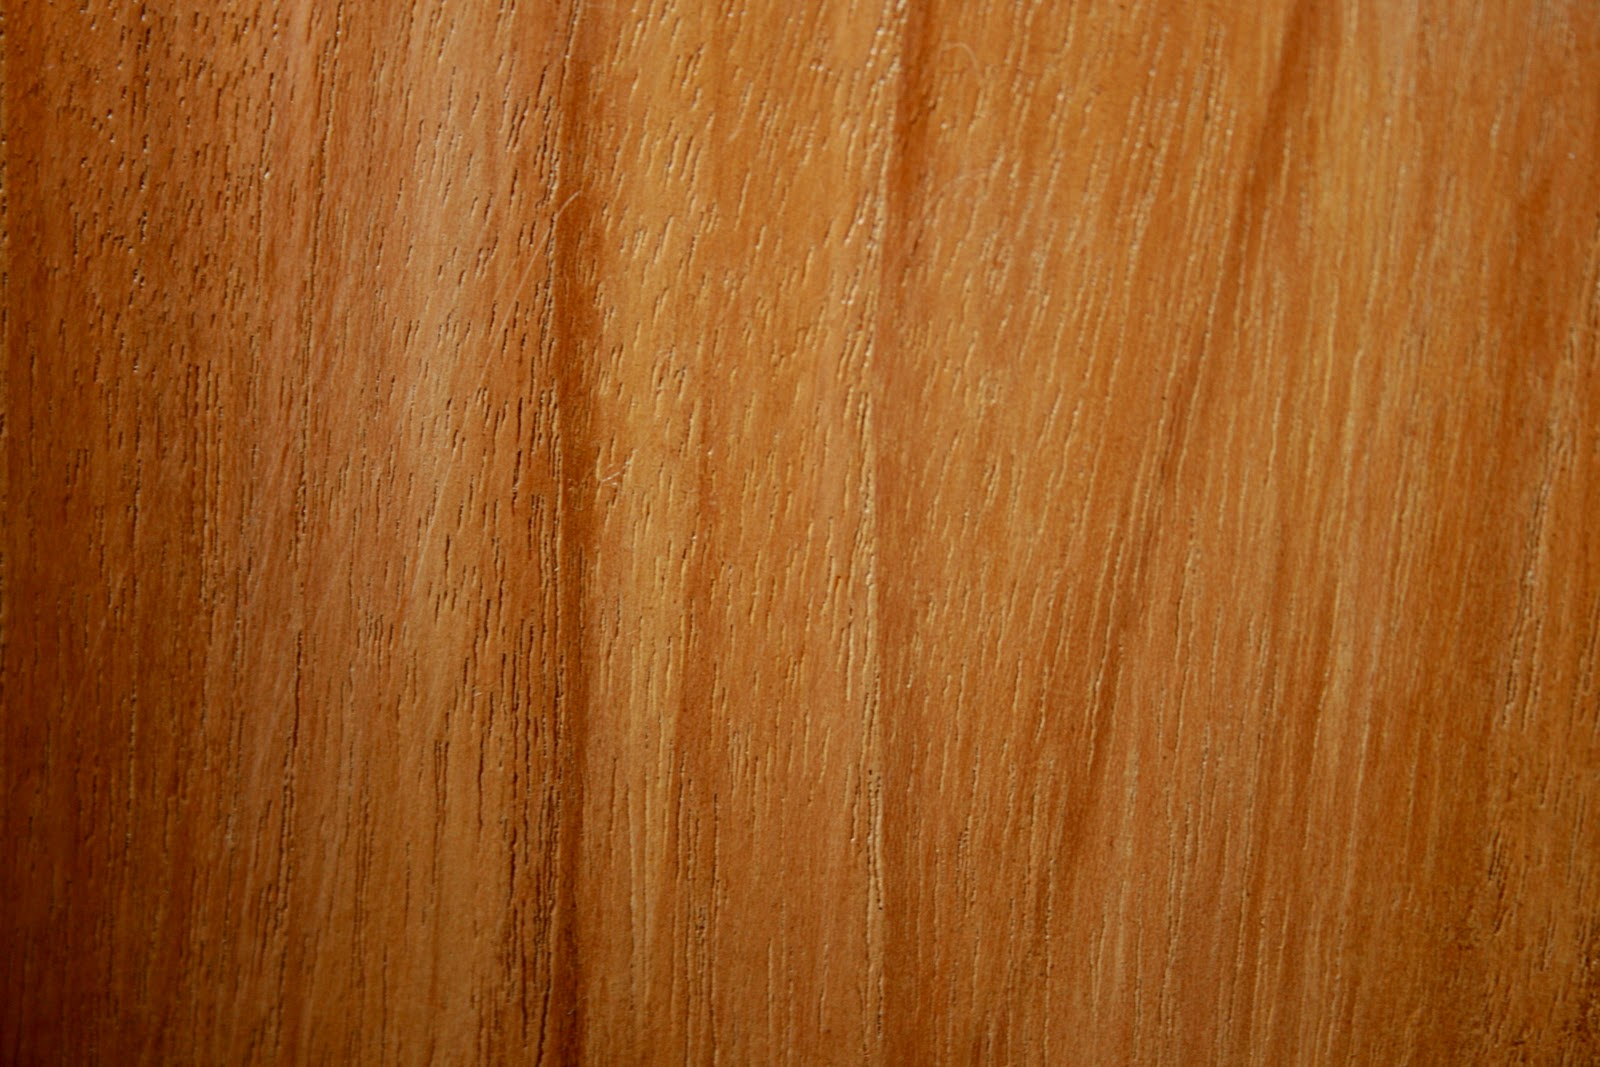 Real Wood Textures Free Download